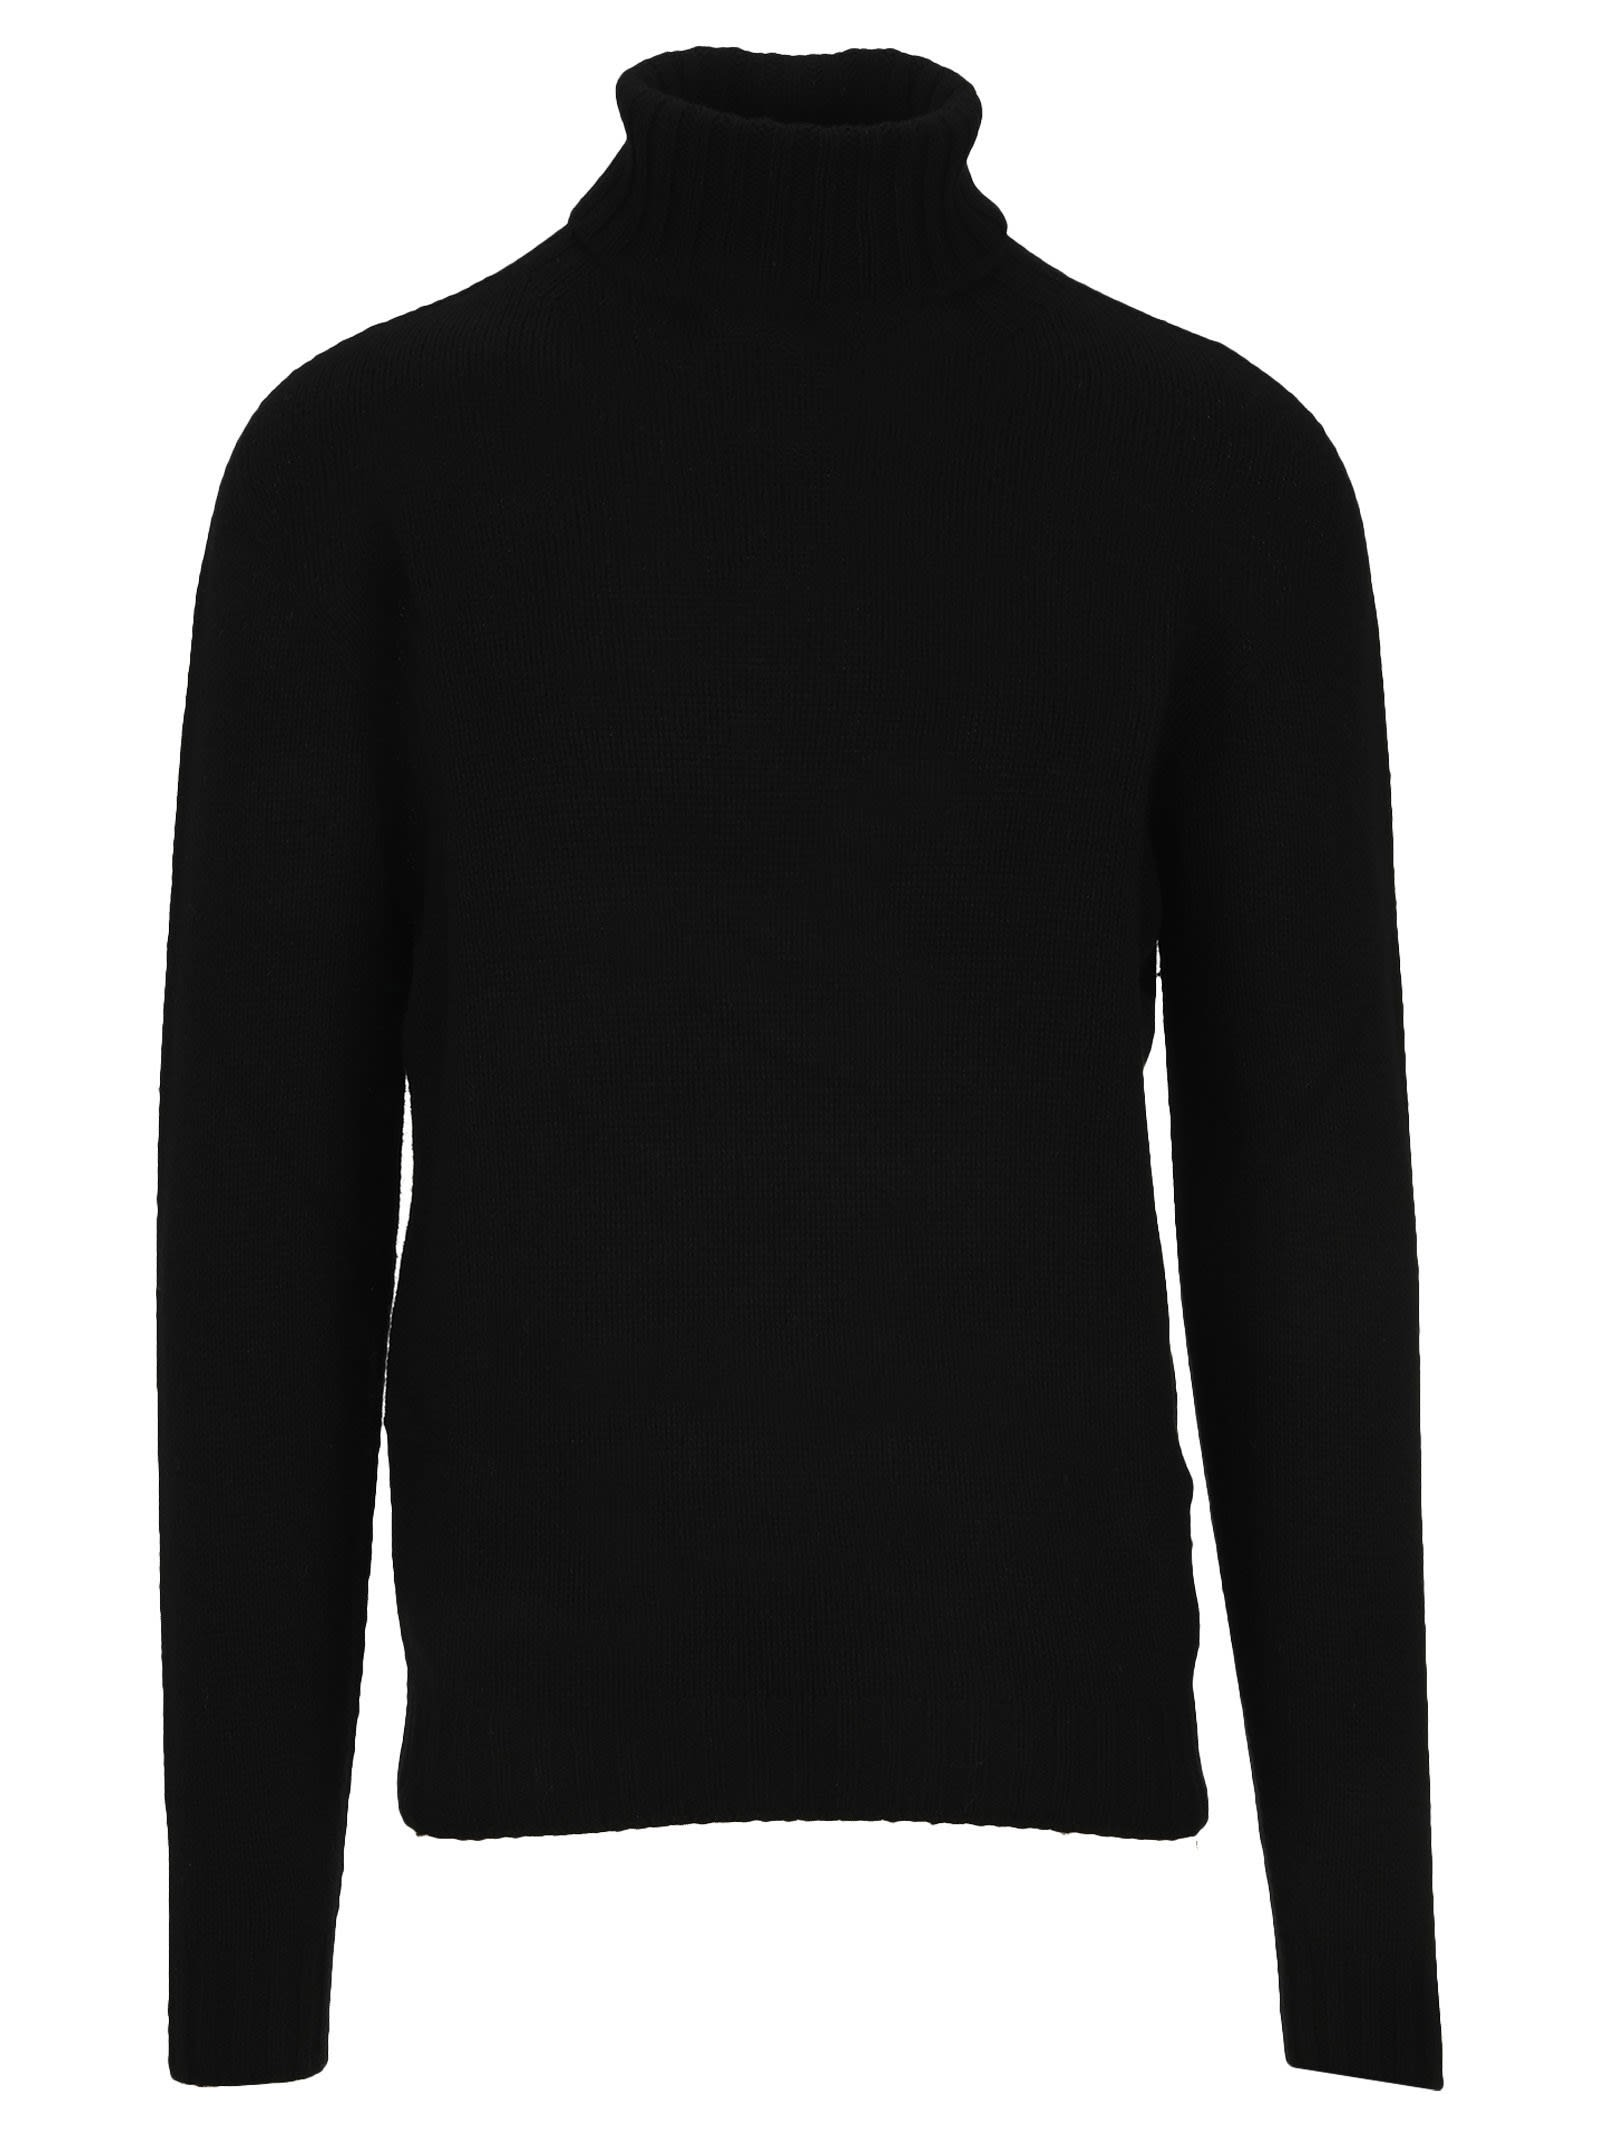 PALM ANGELS TURTLENECK LOGO JUMPER